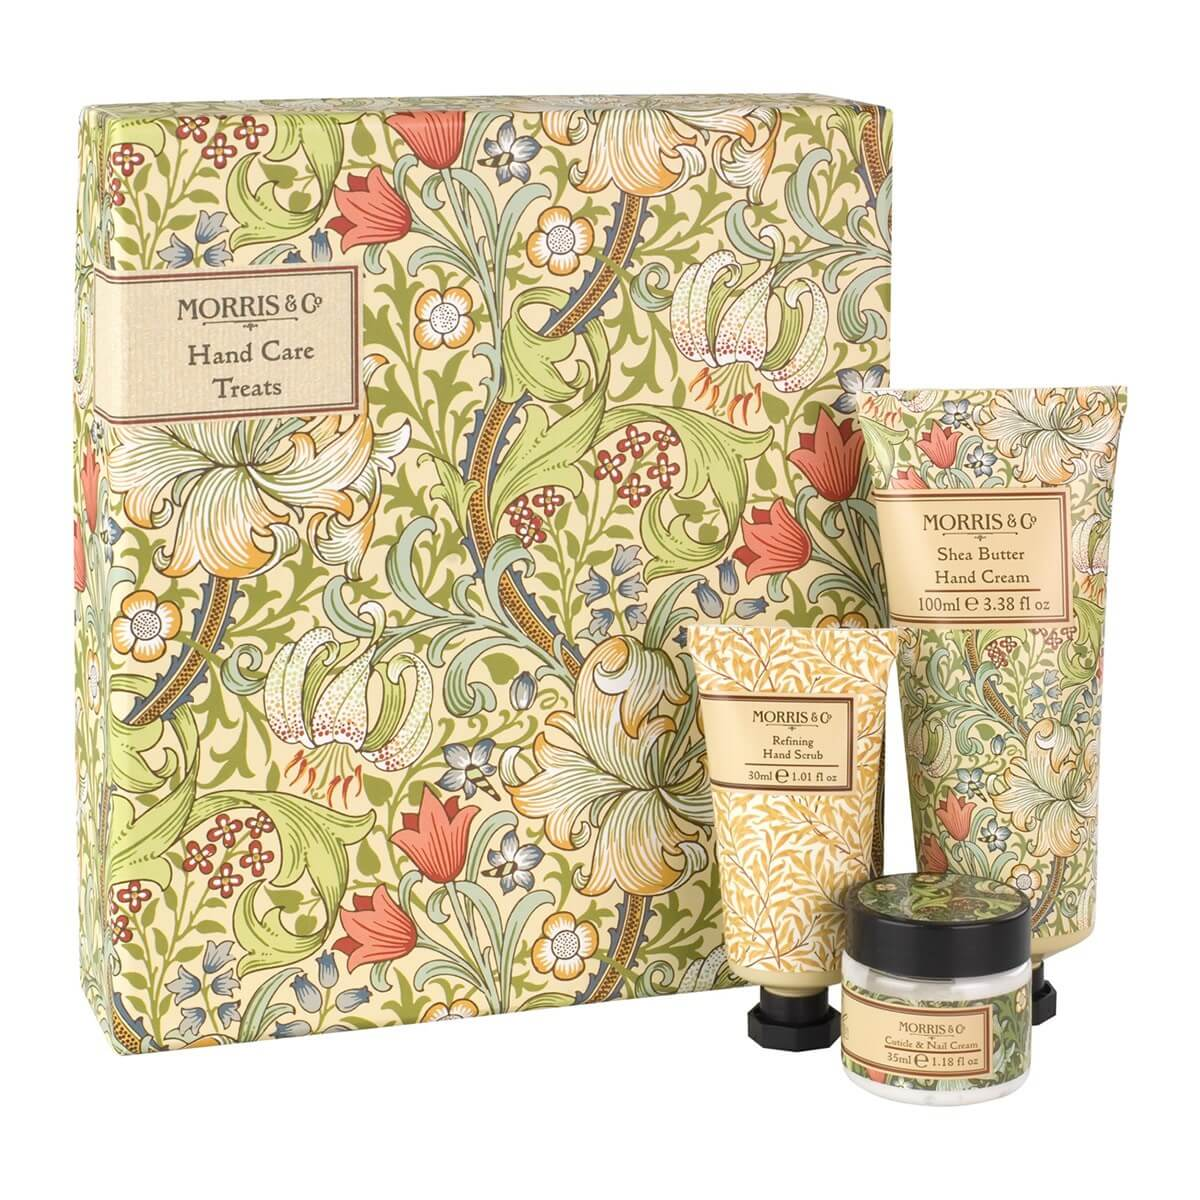 Morris & Co Golden Lily Hand Care Treats